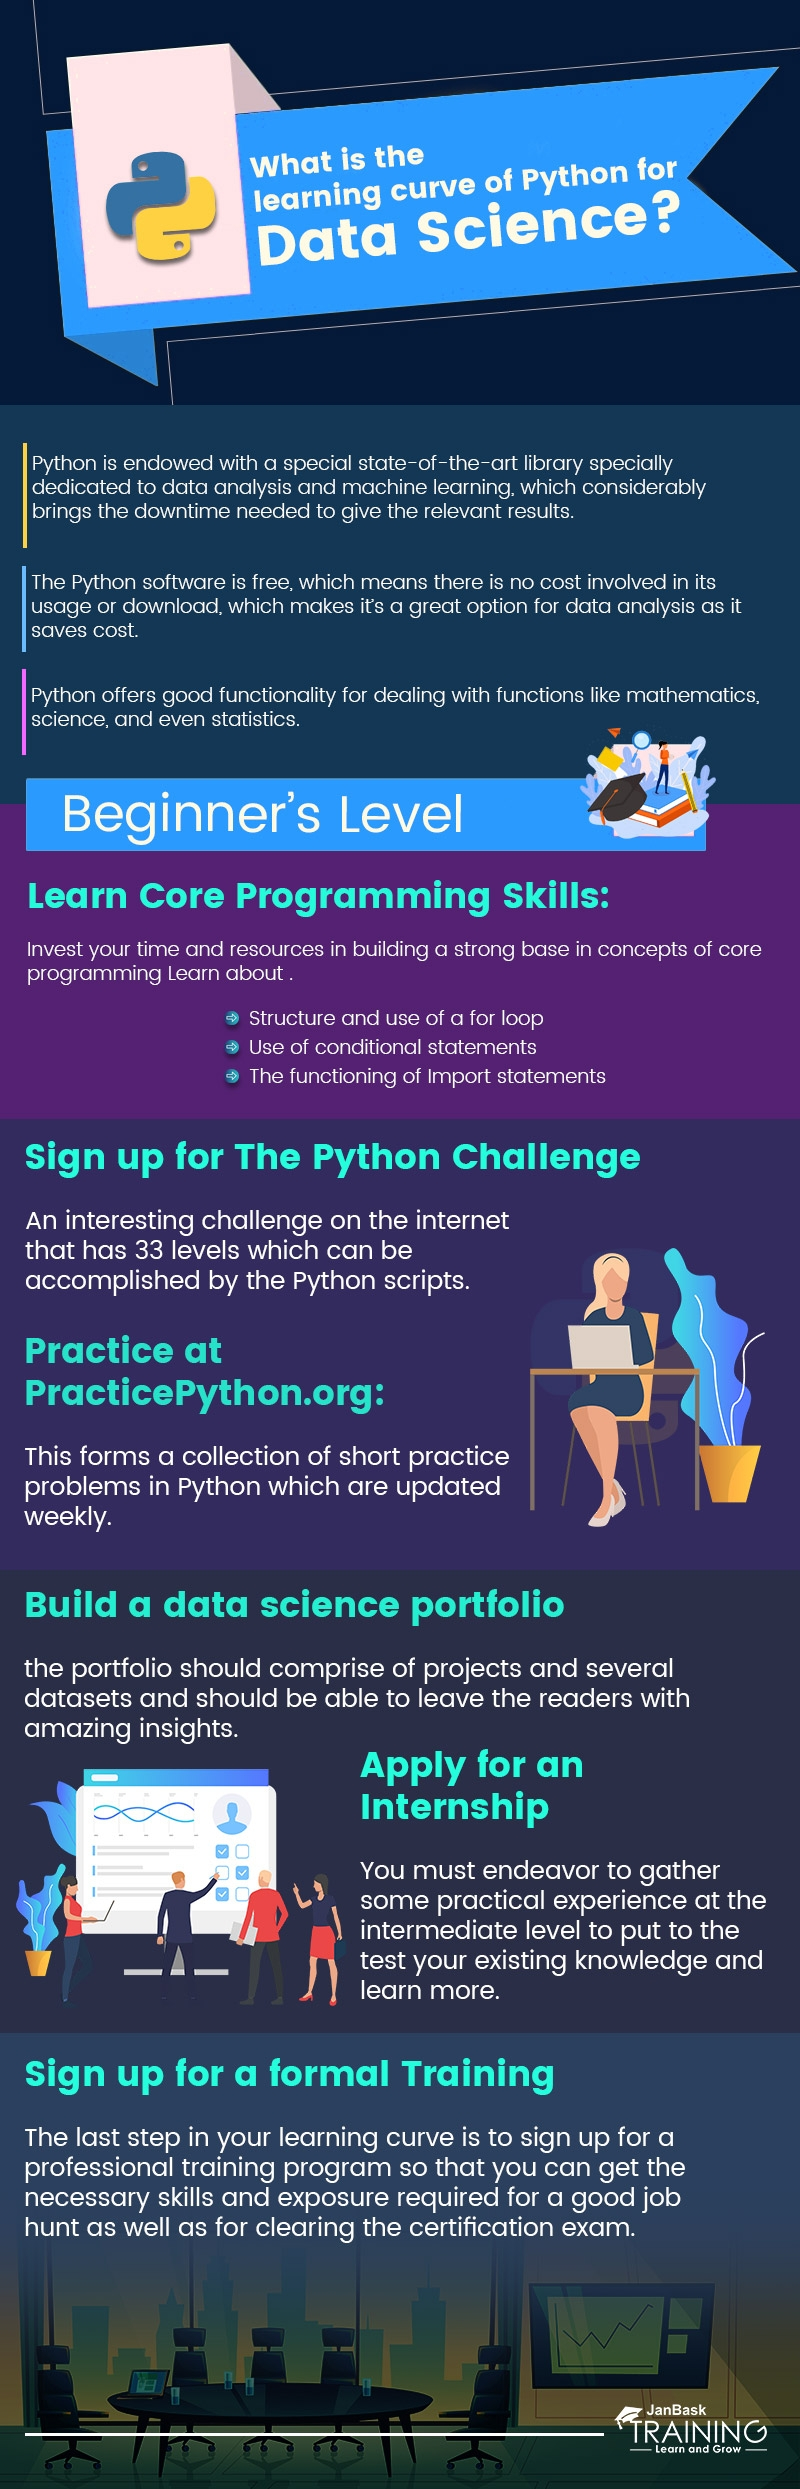 How to Learn Python for Data Science? infographic